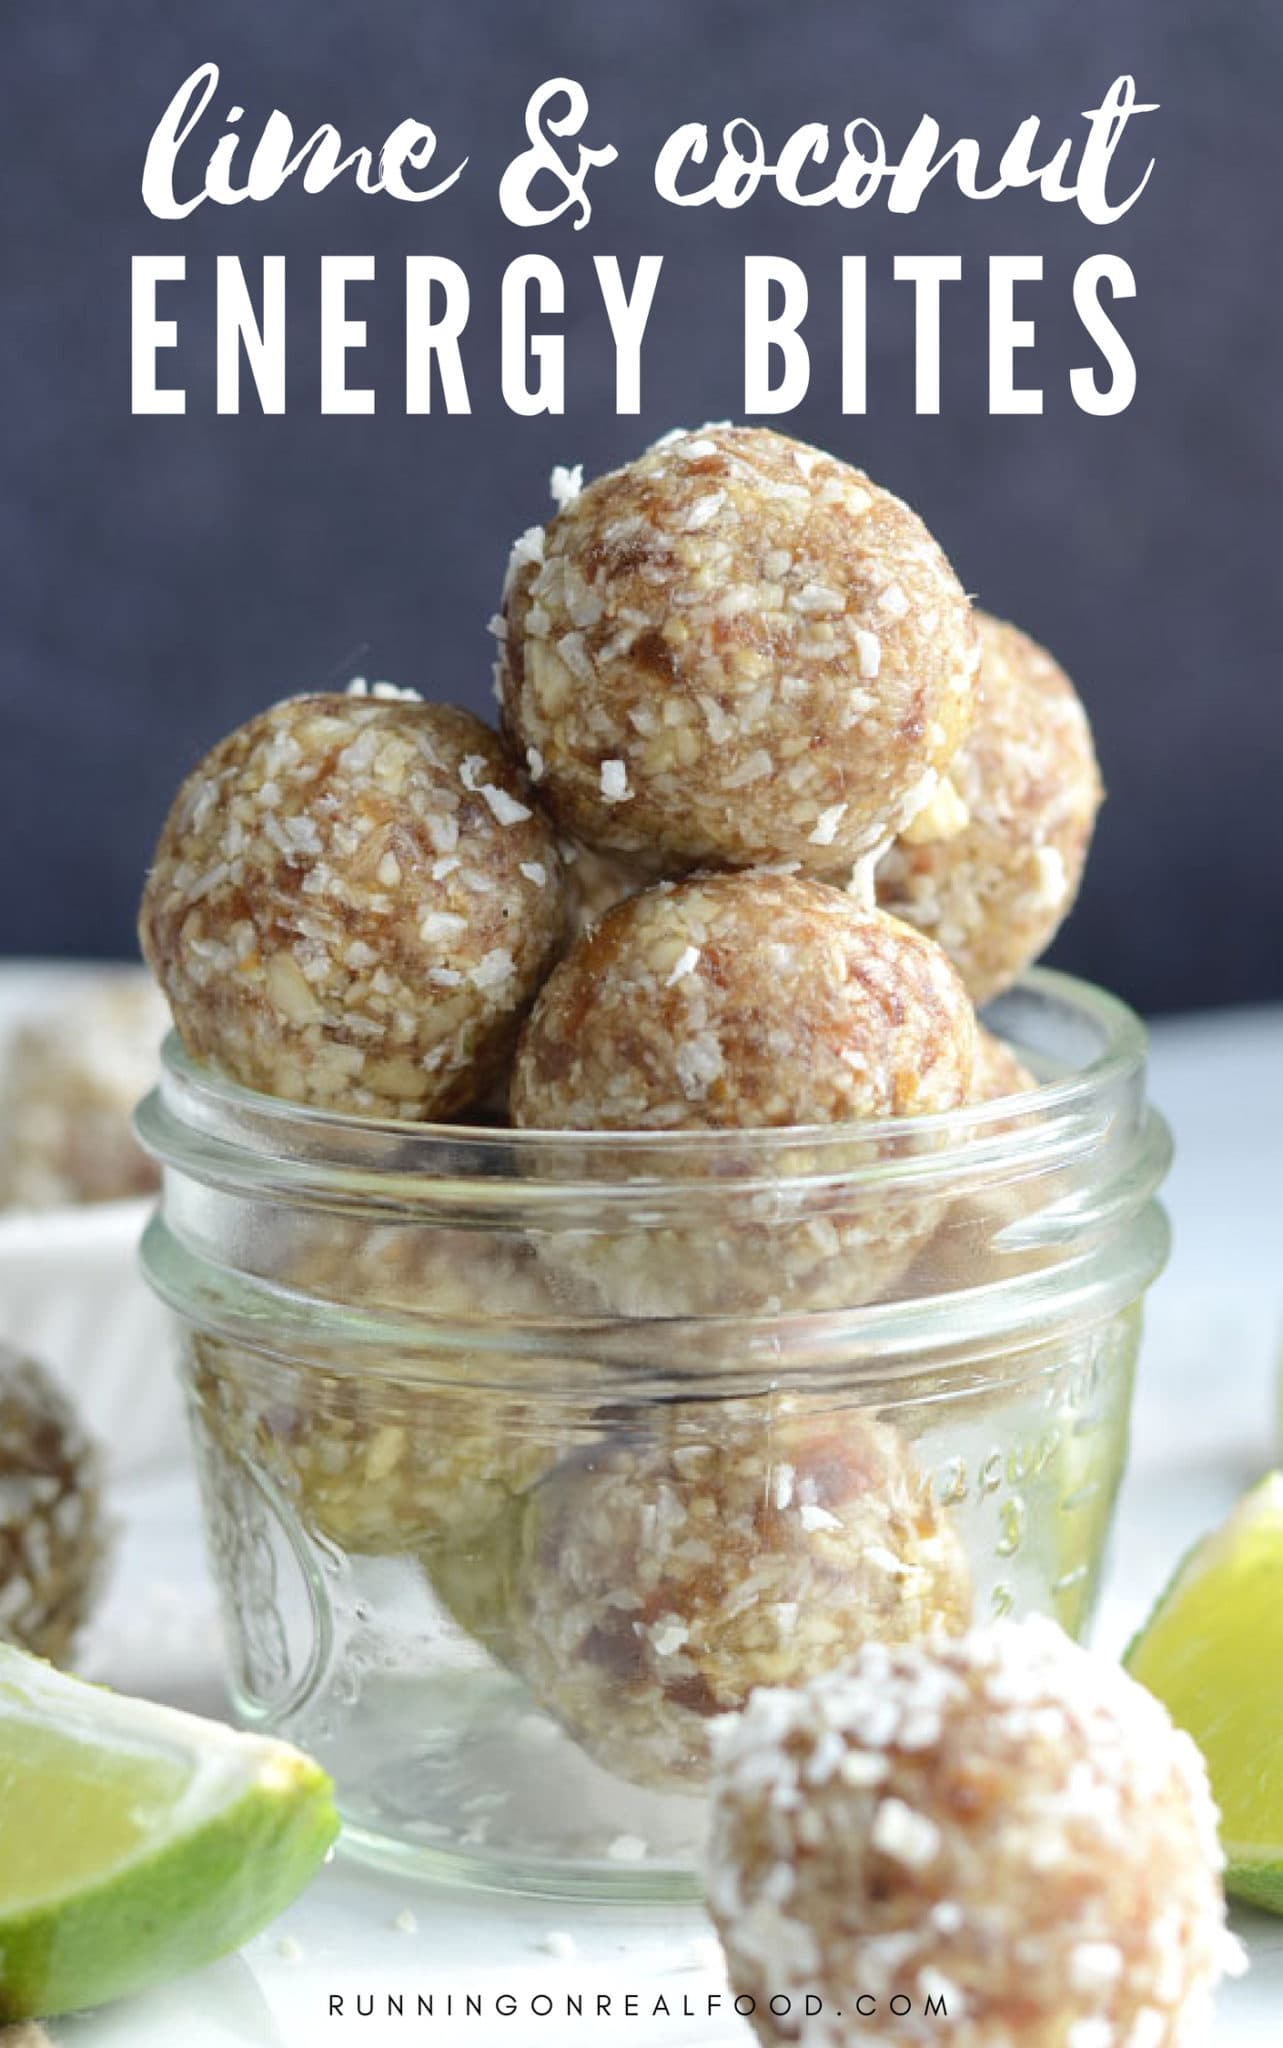 All you need is 4 whole food ingredients to make these delicious lime coconut energy bites. Enjoy them anytime of day for an all-natural energy boost! Gluten-free, vegan, oil-free, no added sugar, no baking. So easy, fresh and yummy!